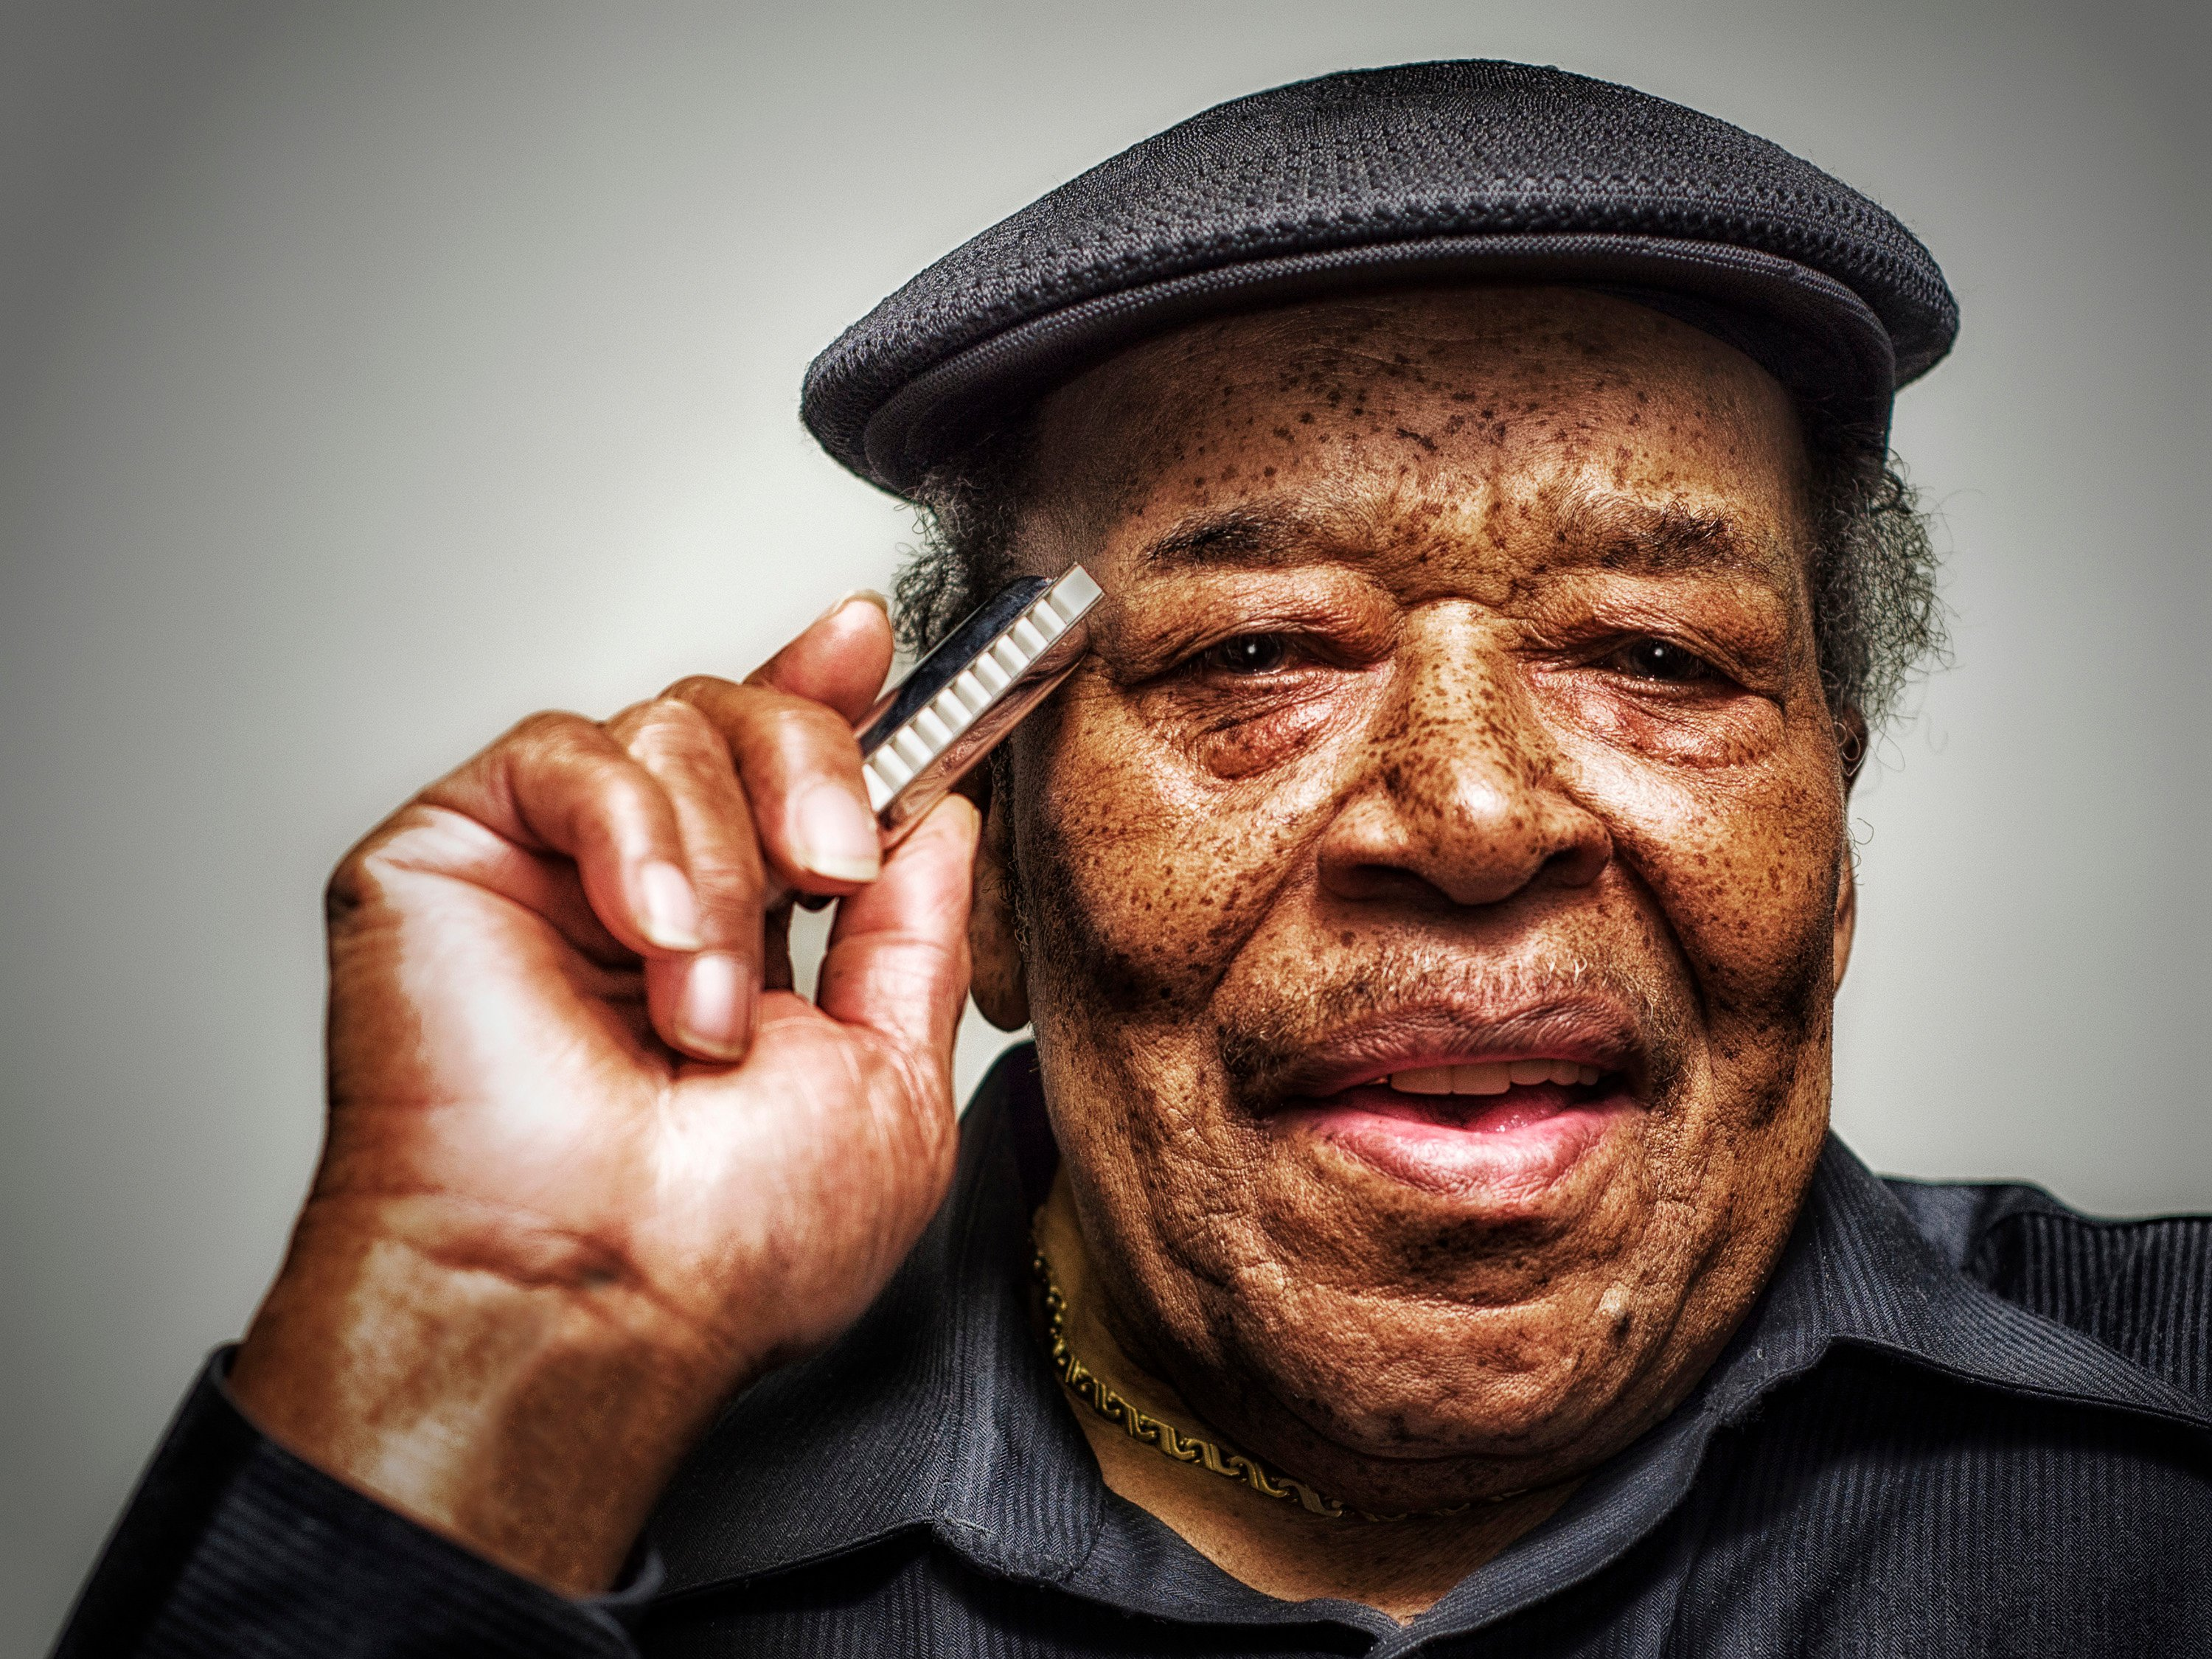 El cantante y armonicista James Cotton. Foto: Jason Marck